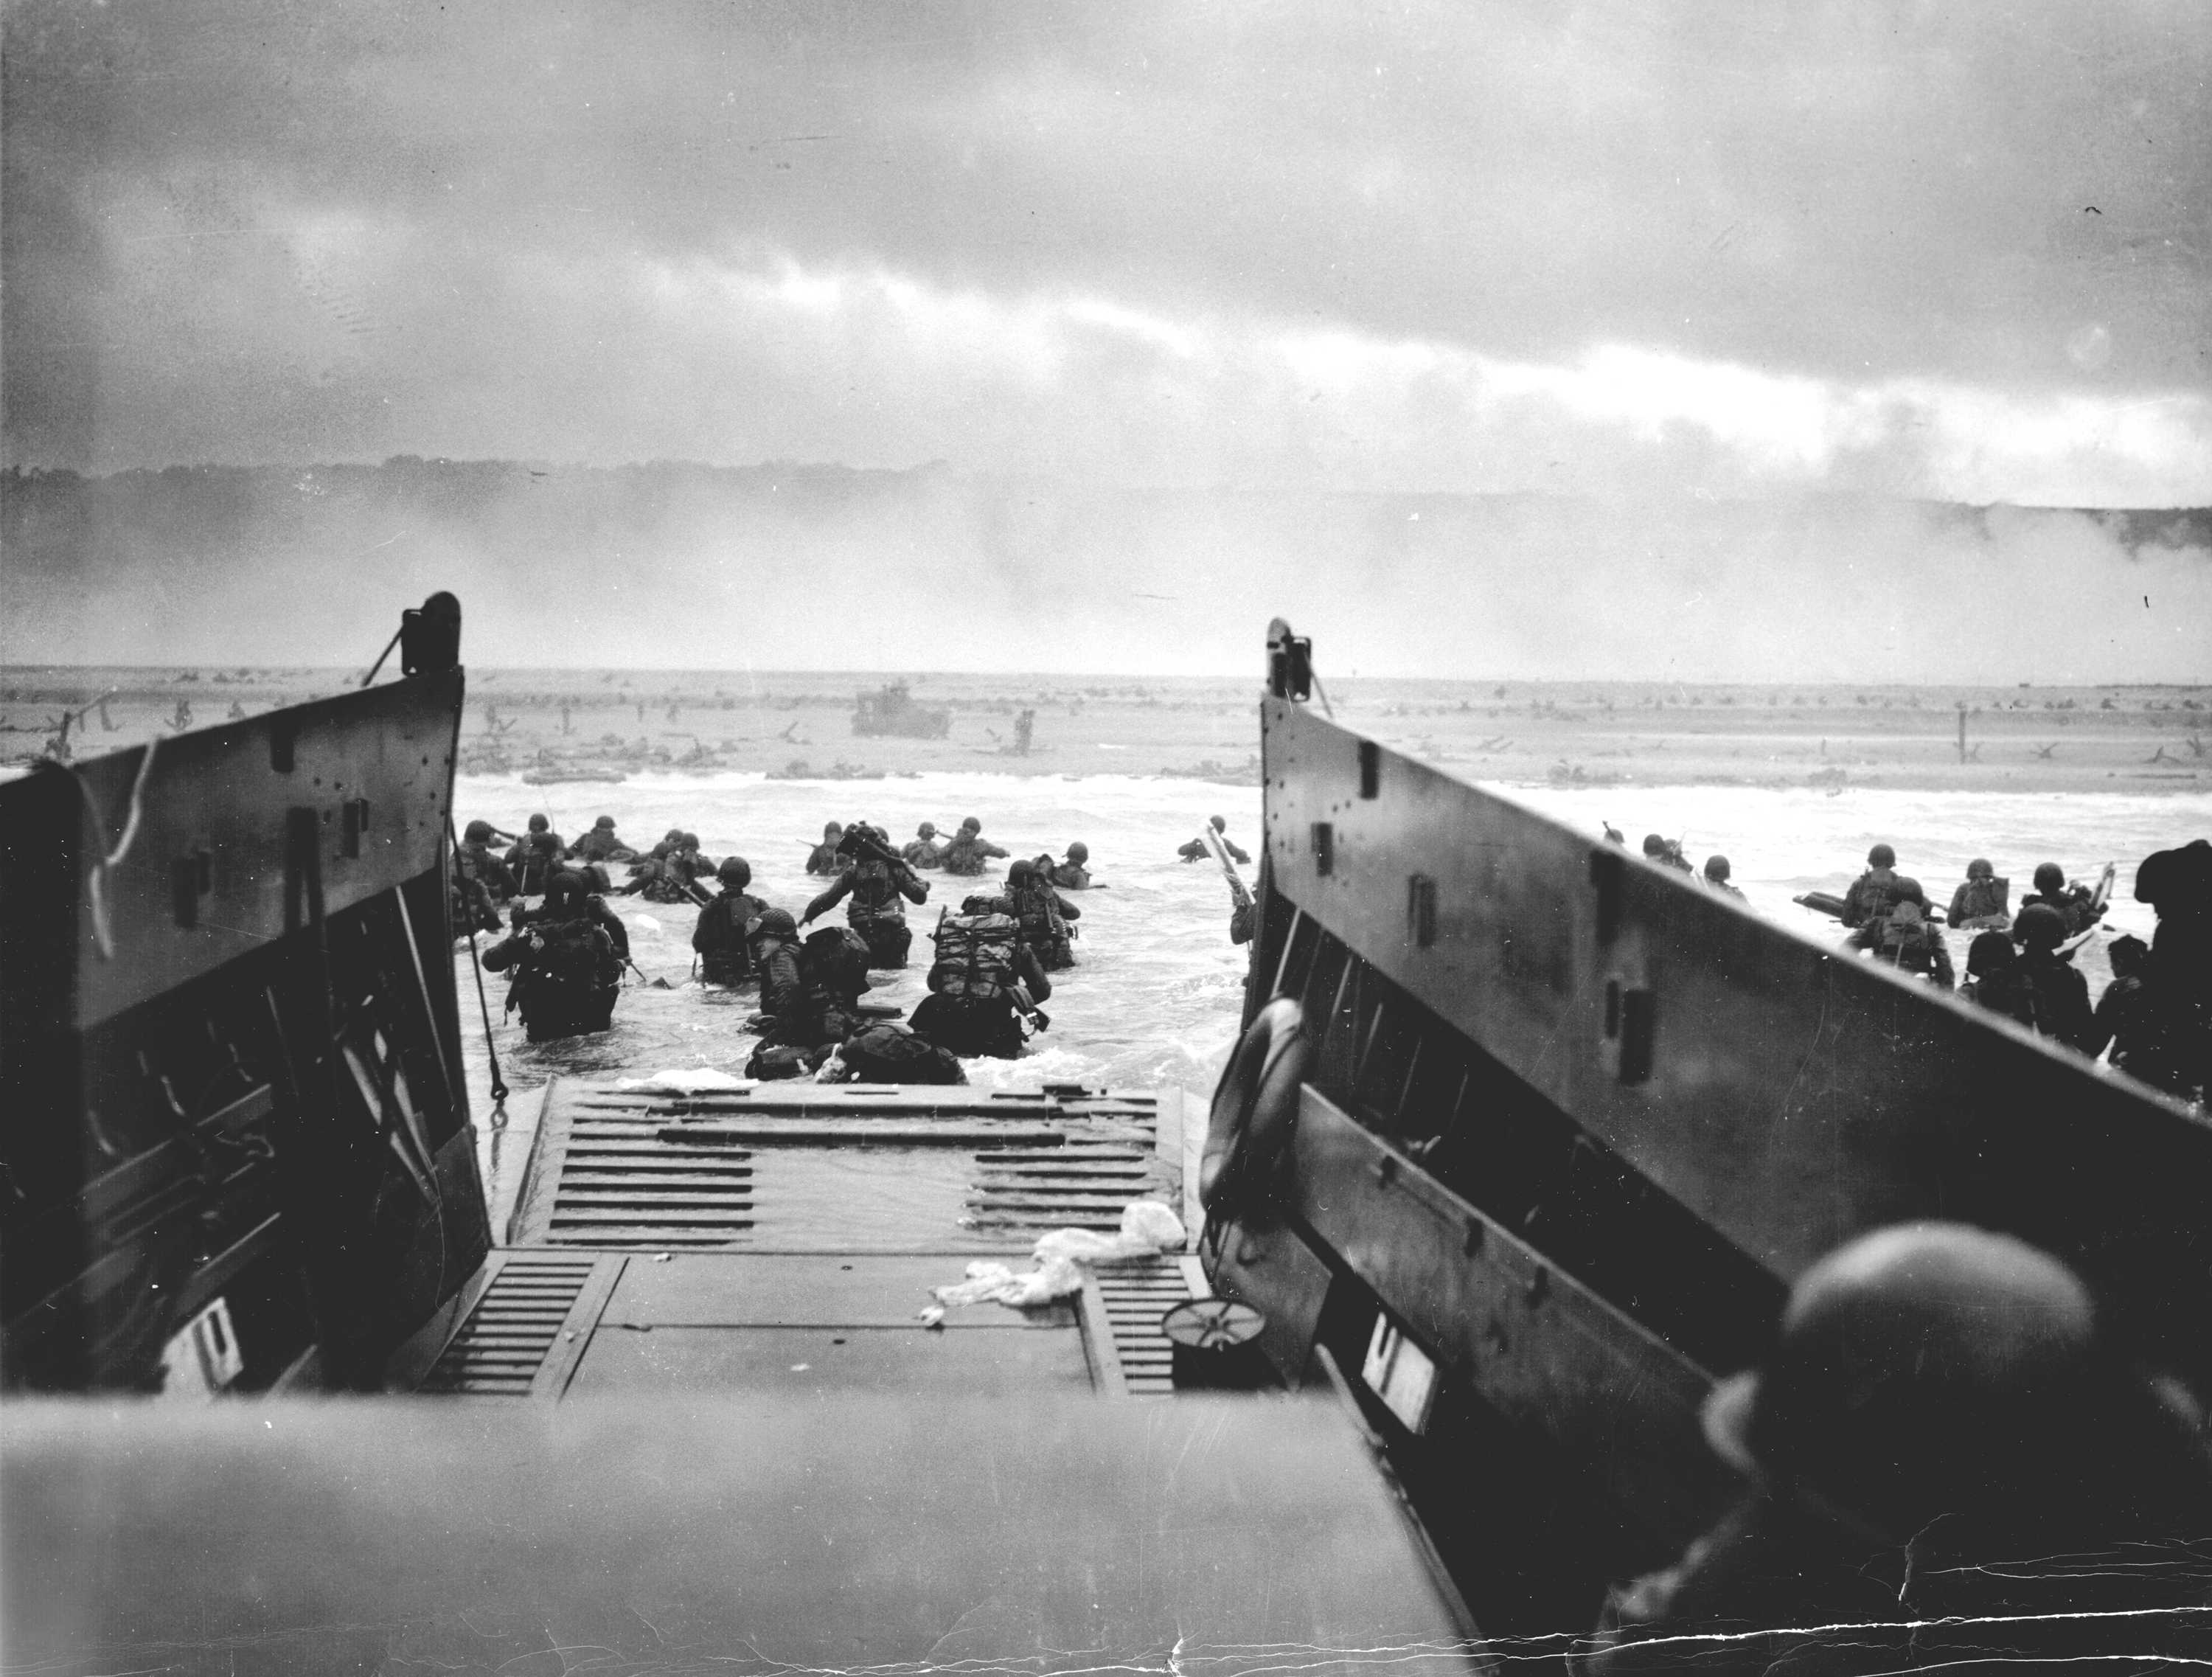 soldiers American Normandy France grayscale World War II D 3000x2274